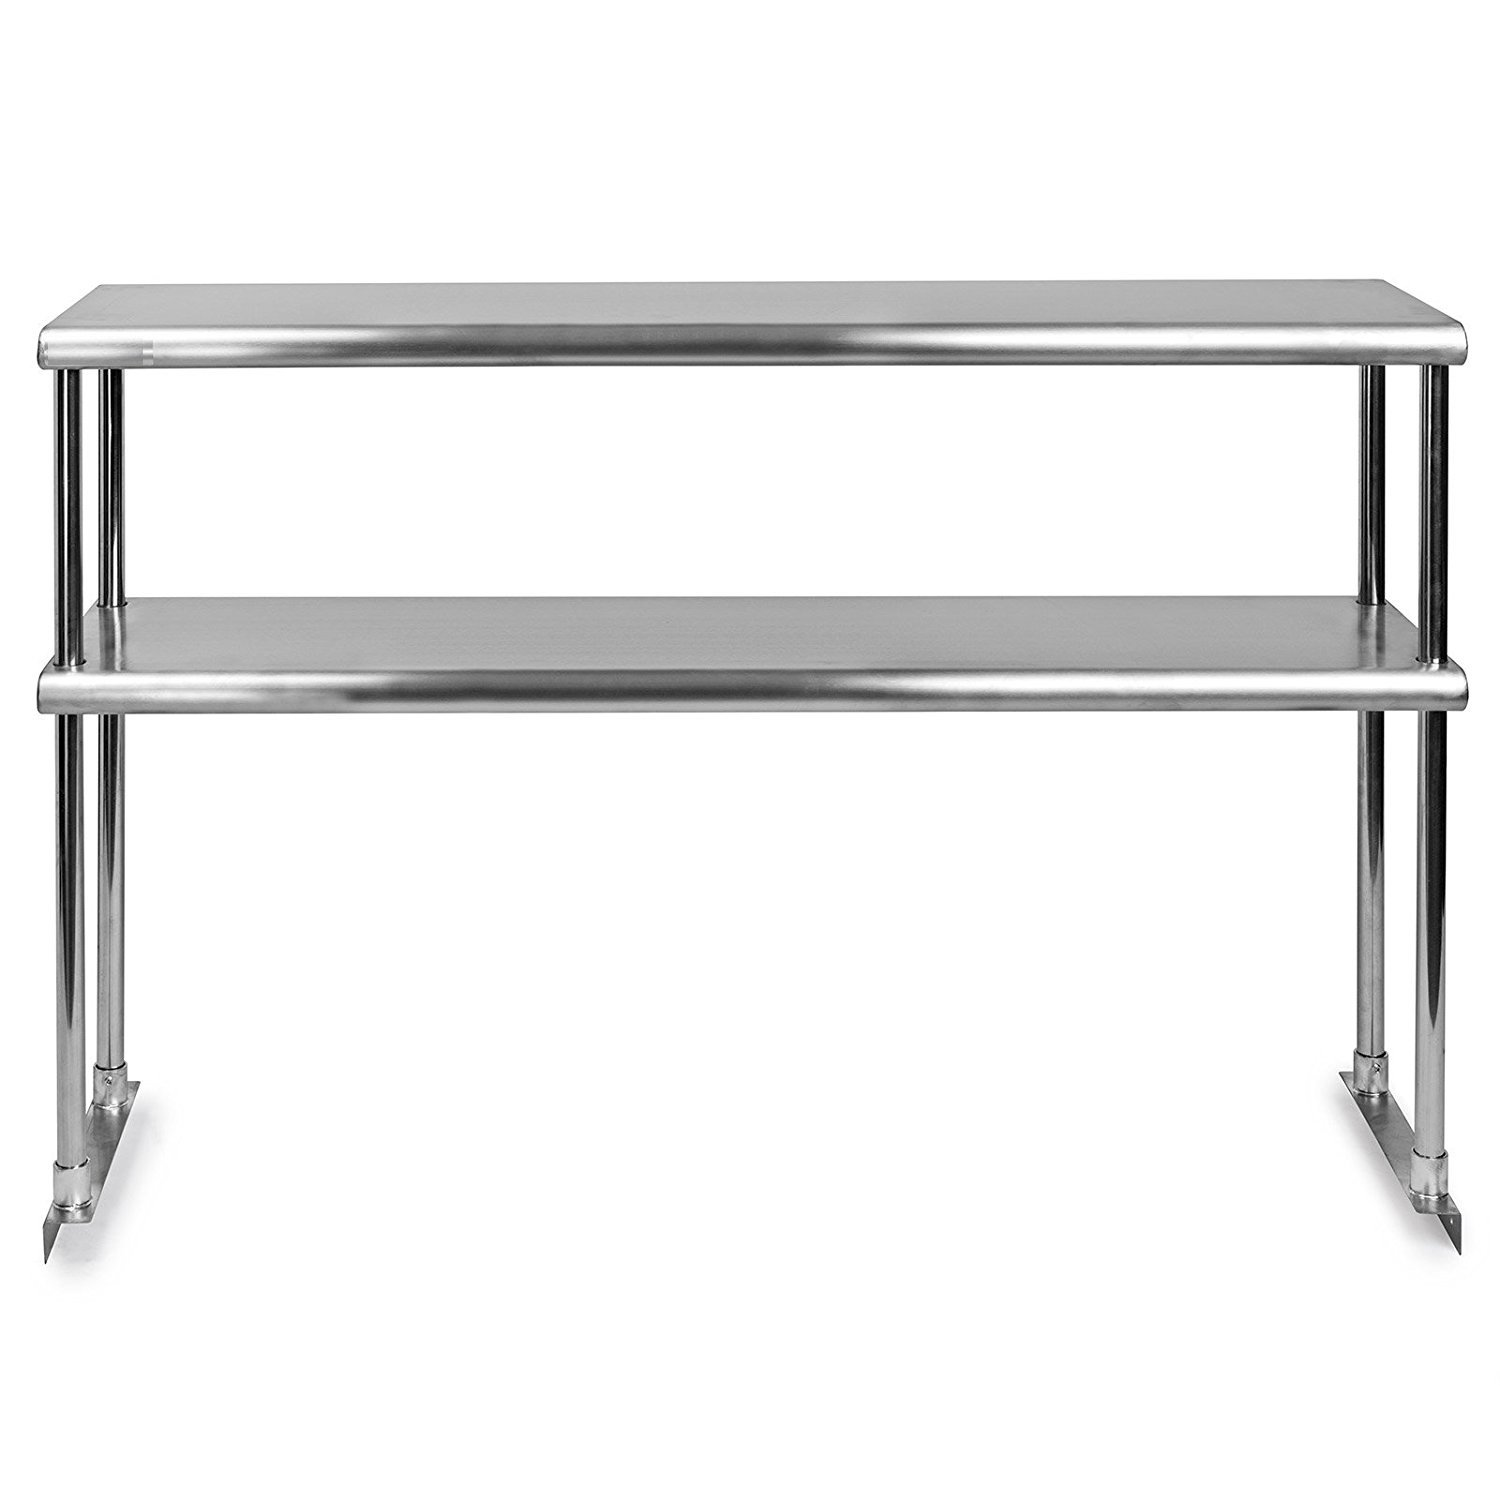 Stainless Steel Double Overshelf for Cheap mail OFFicial mail order order shopping Prep Work 60 x Table - N 14